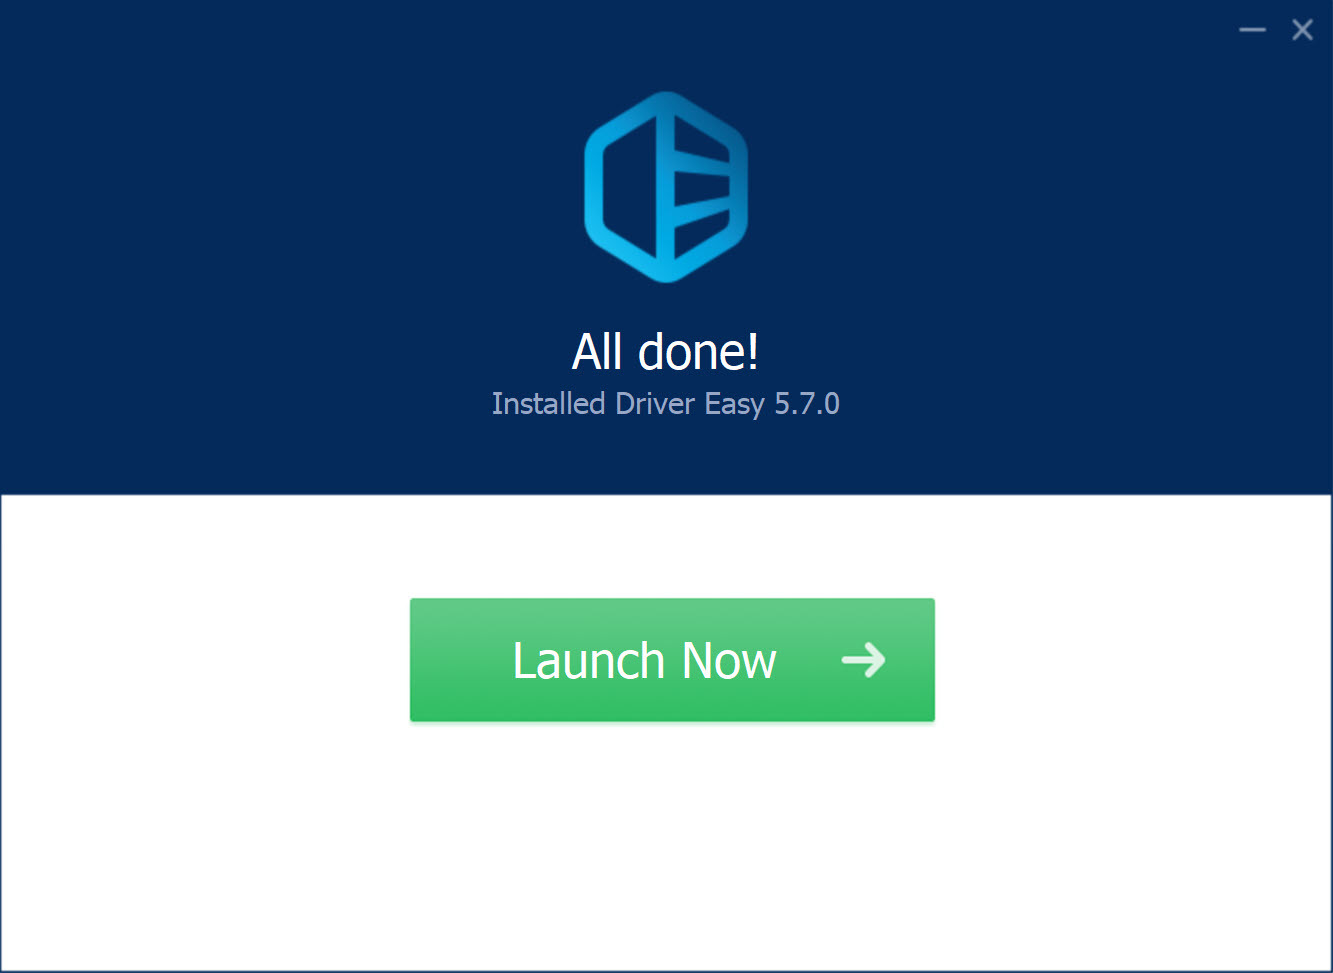 Driver Easy Launch Now